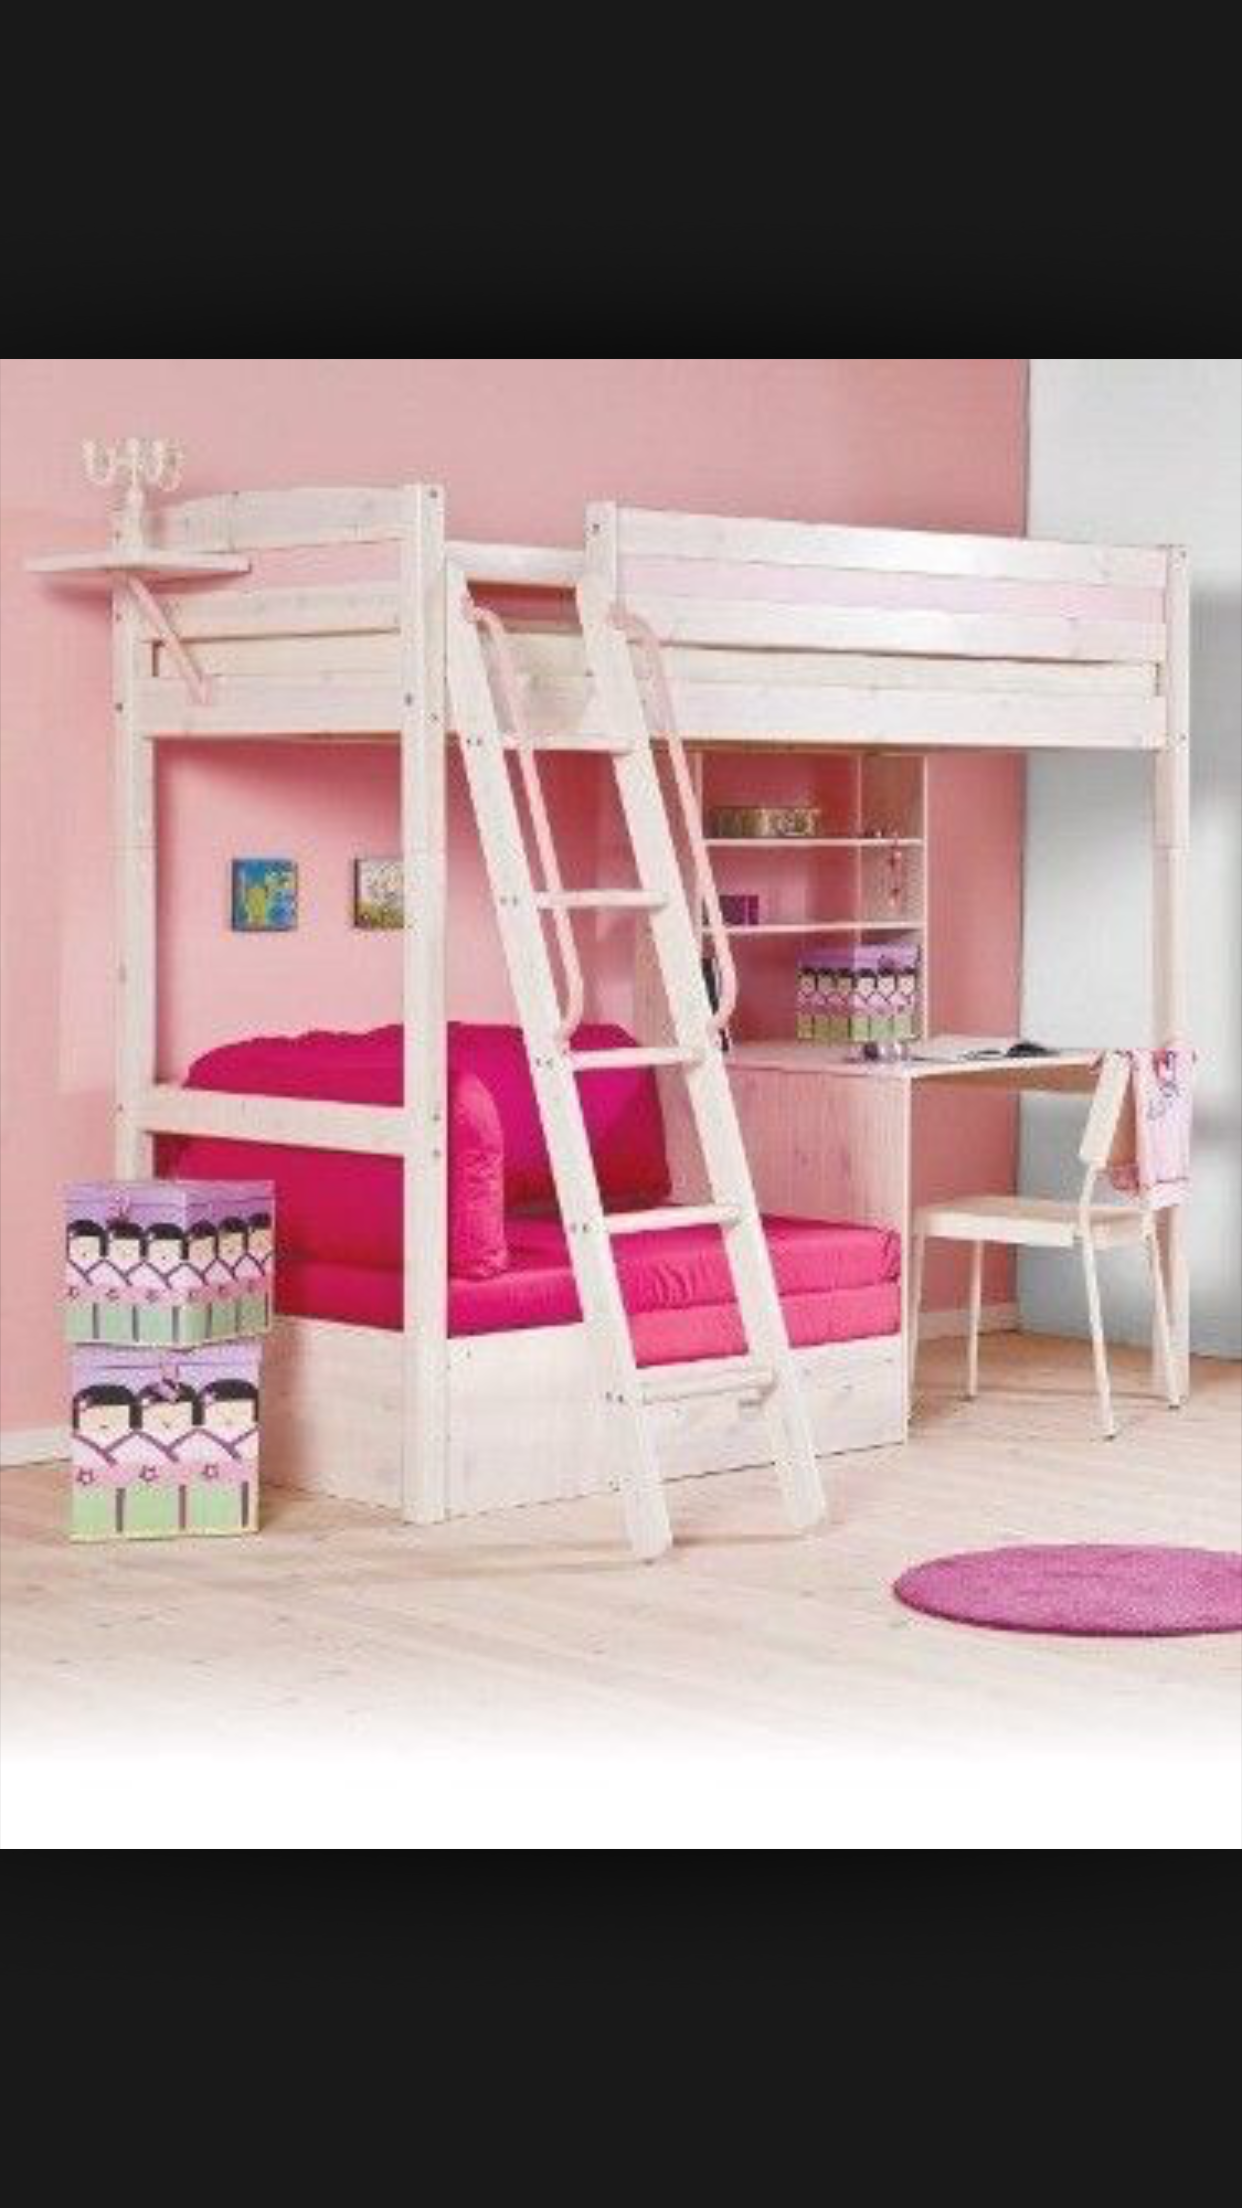 there pinterest side dream and cozy one pin s home space underneath on how bed bunk dorm fridges room to are still like college that beds the of i bottom store two mini loft